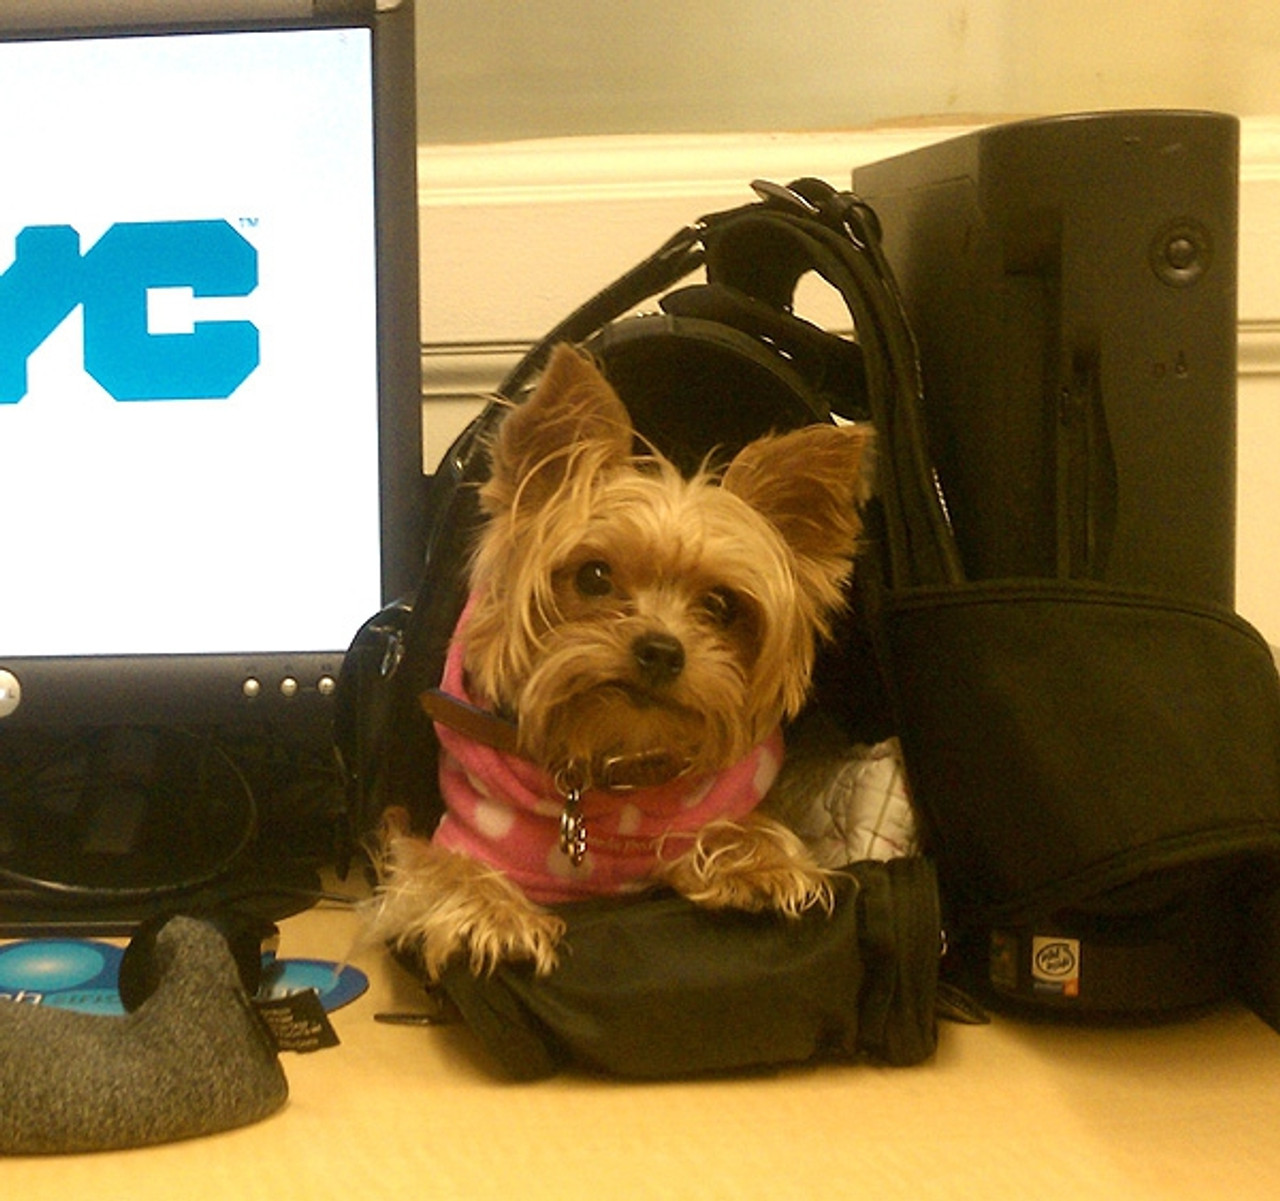 Gaby, a small Yorkie, coming to work